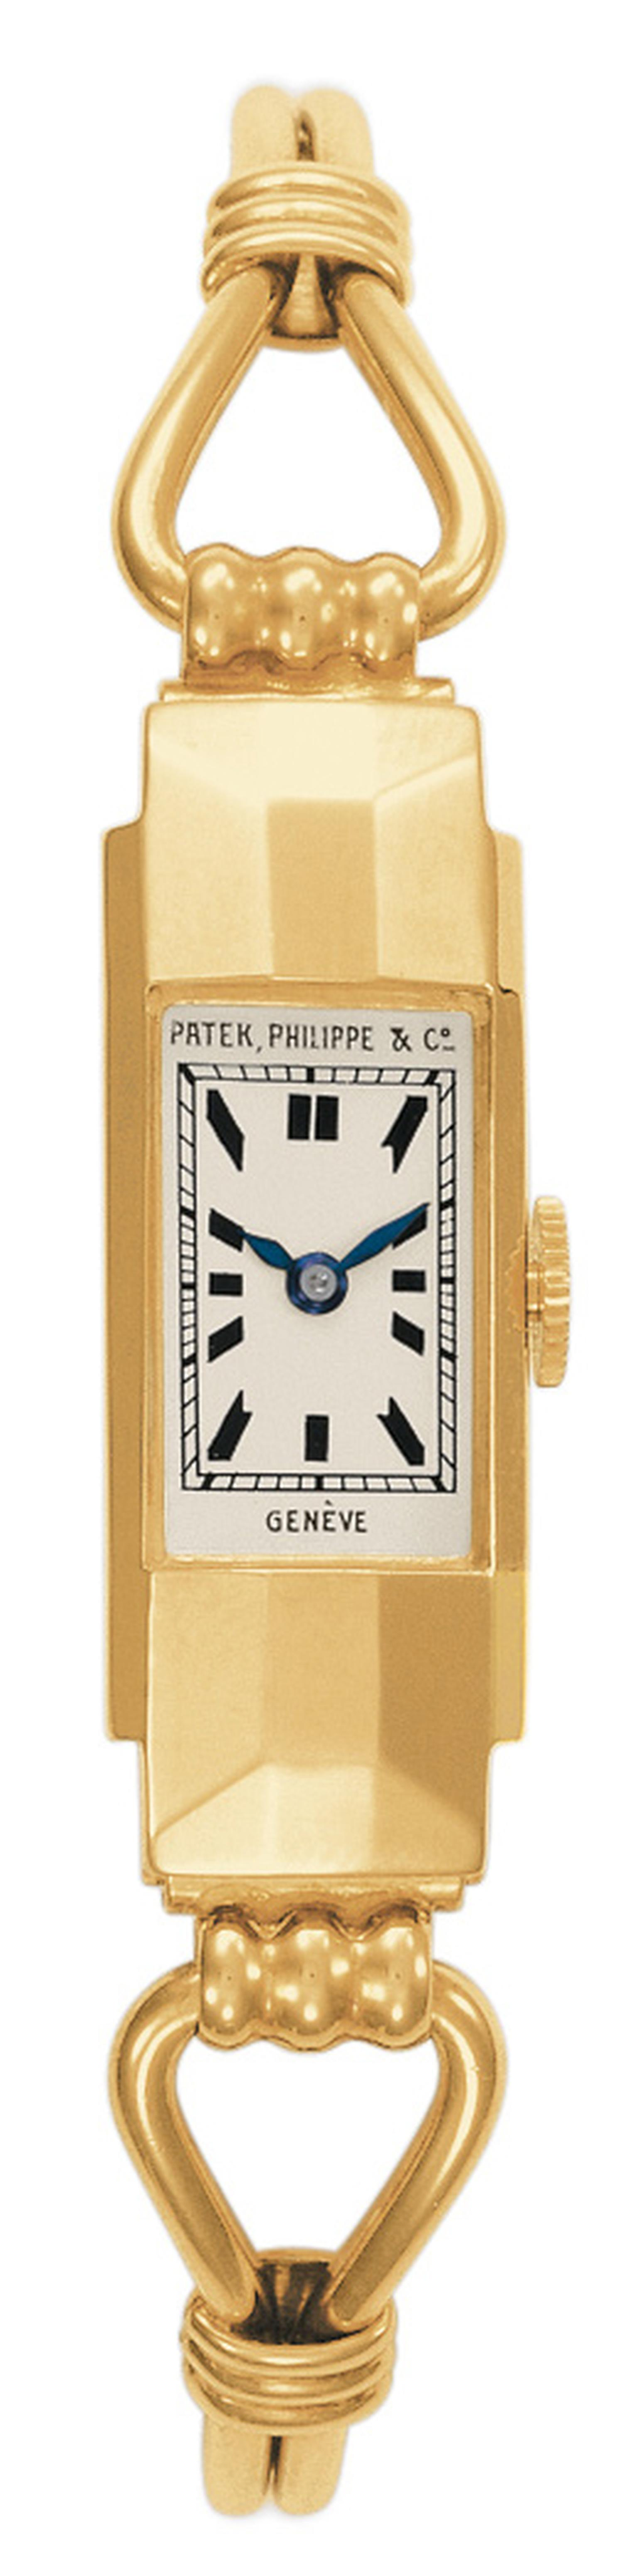 Patek-Philippe-P0707_a_100_collection-1925-40